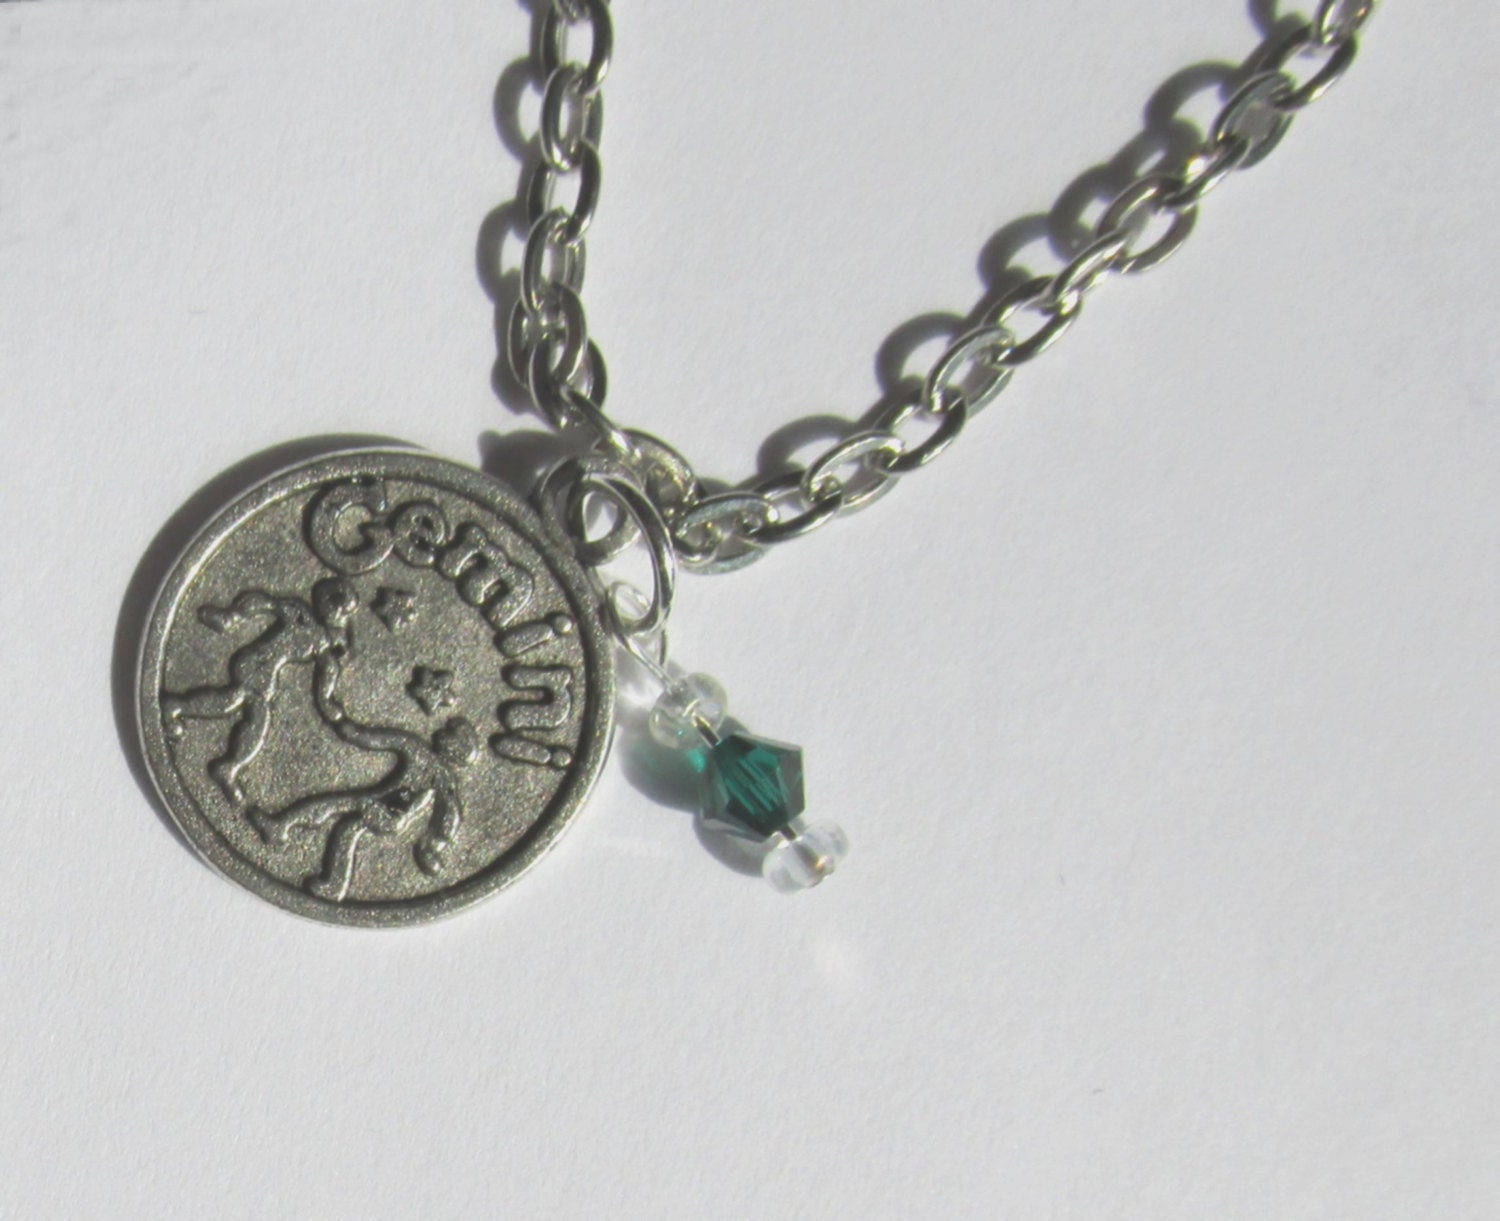 gemini birthstone necklace charm sun sign may or june